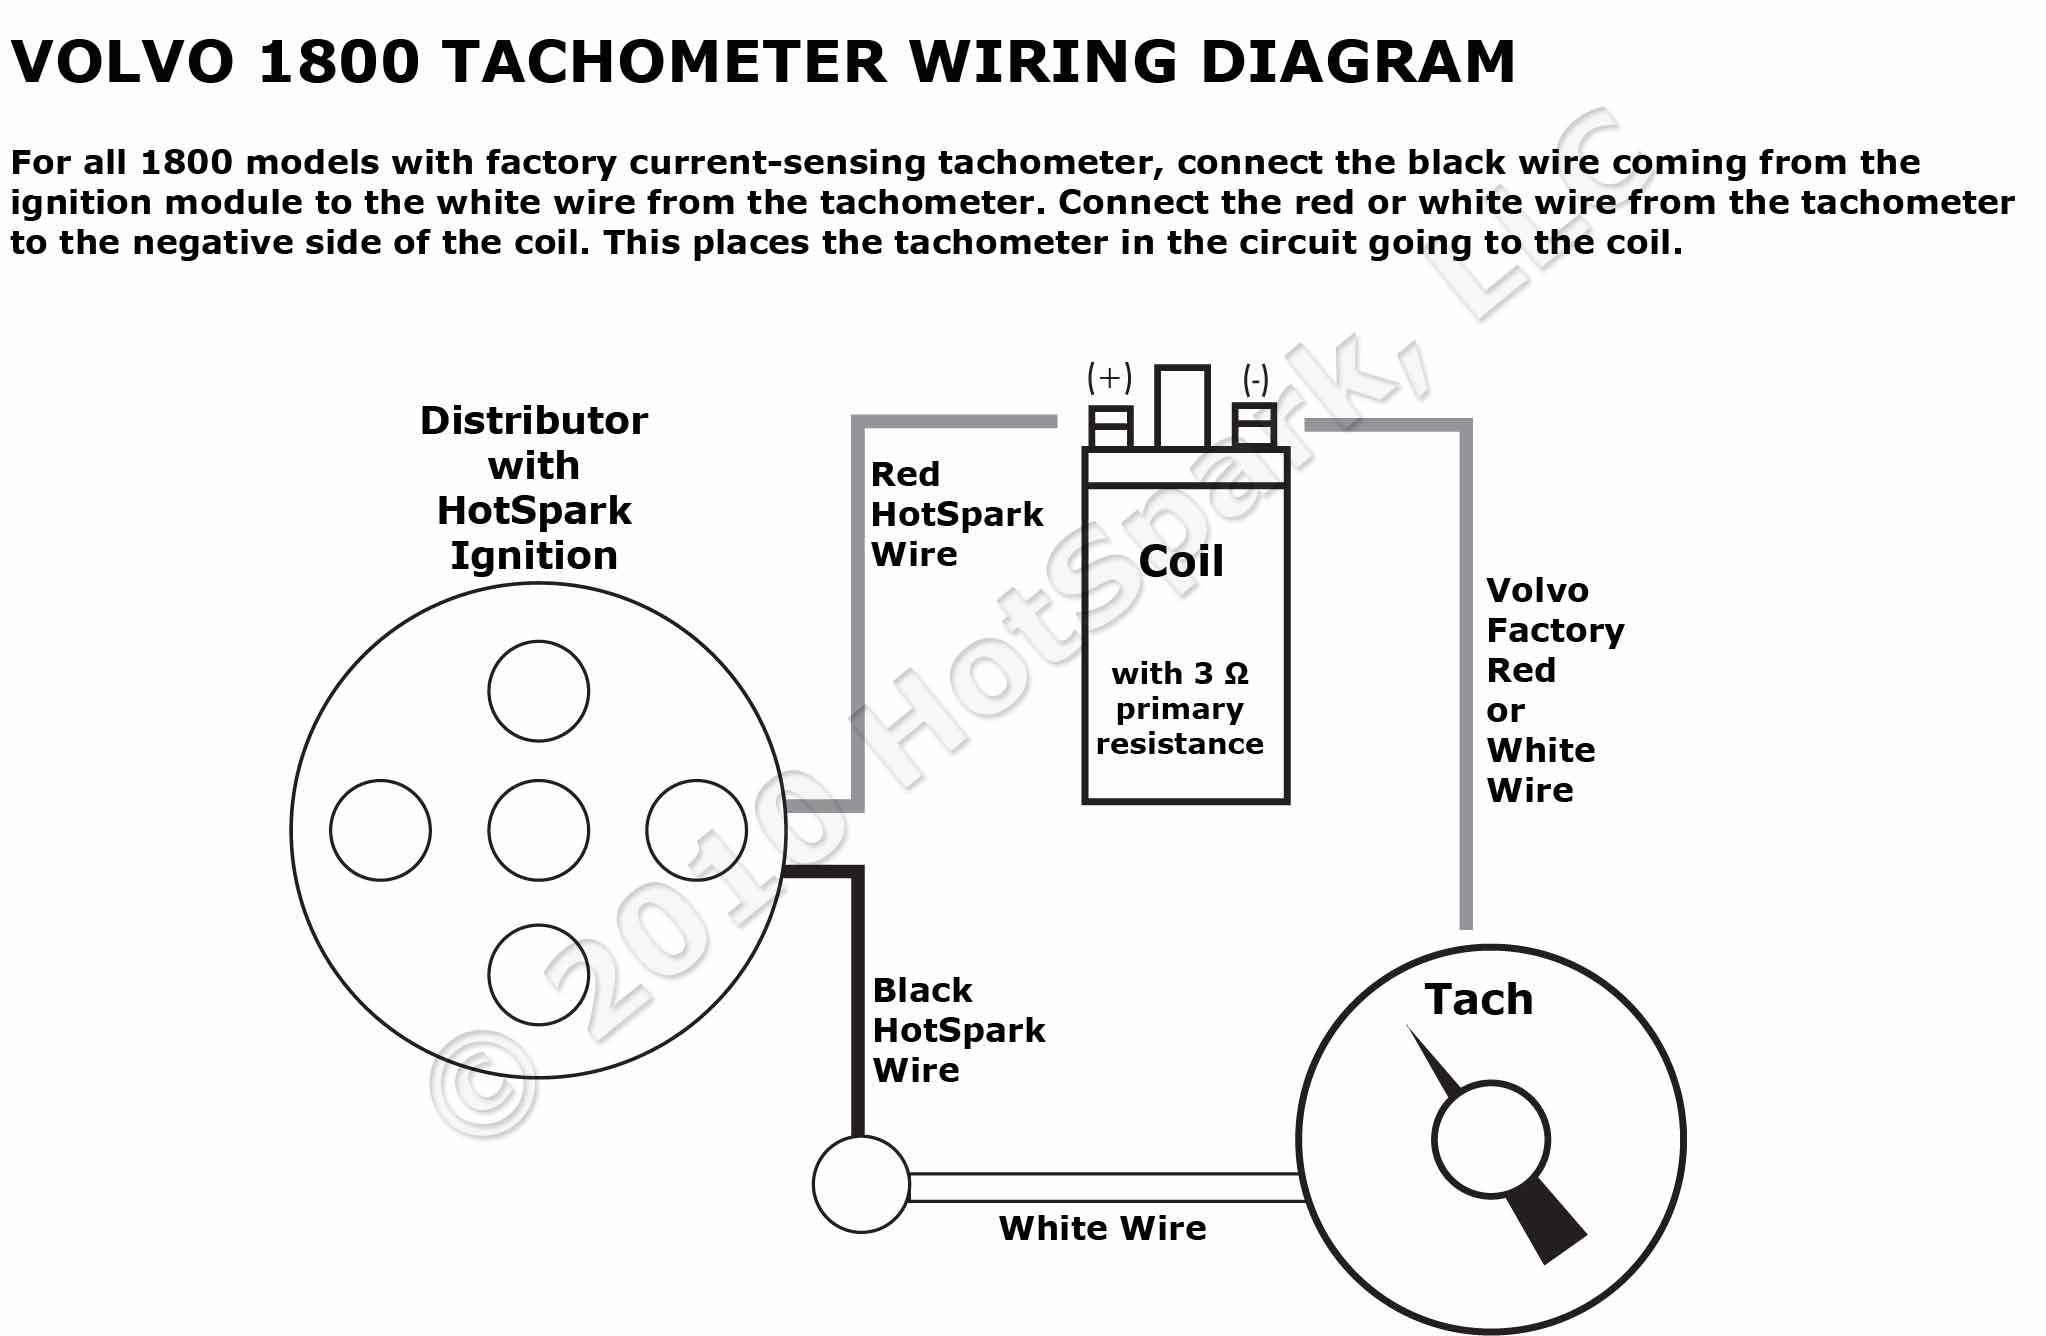 Volvo 1800 Tachometer and Hot Spark Wiring Diagram tach wiring diagram autometer tach wiring diagram \u2022 wiring aftermarket tachometer wiring diagram at panicattacktreatment.co